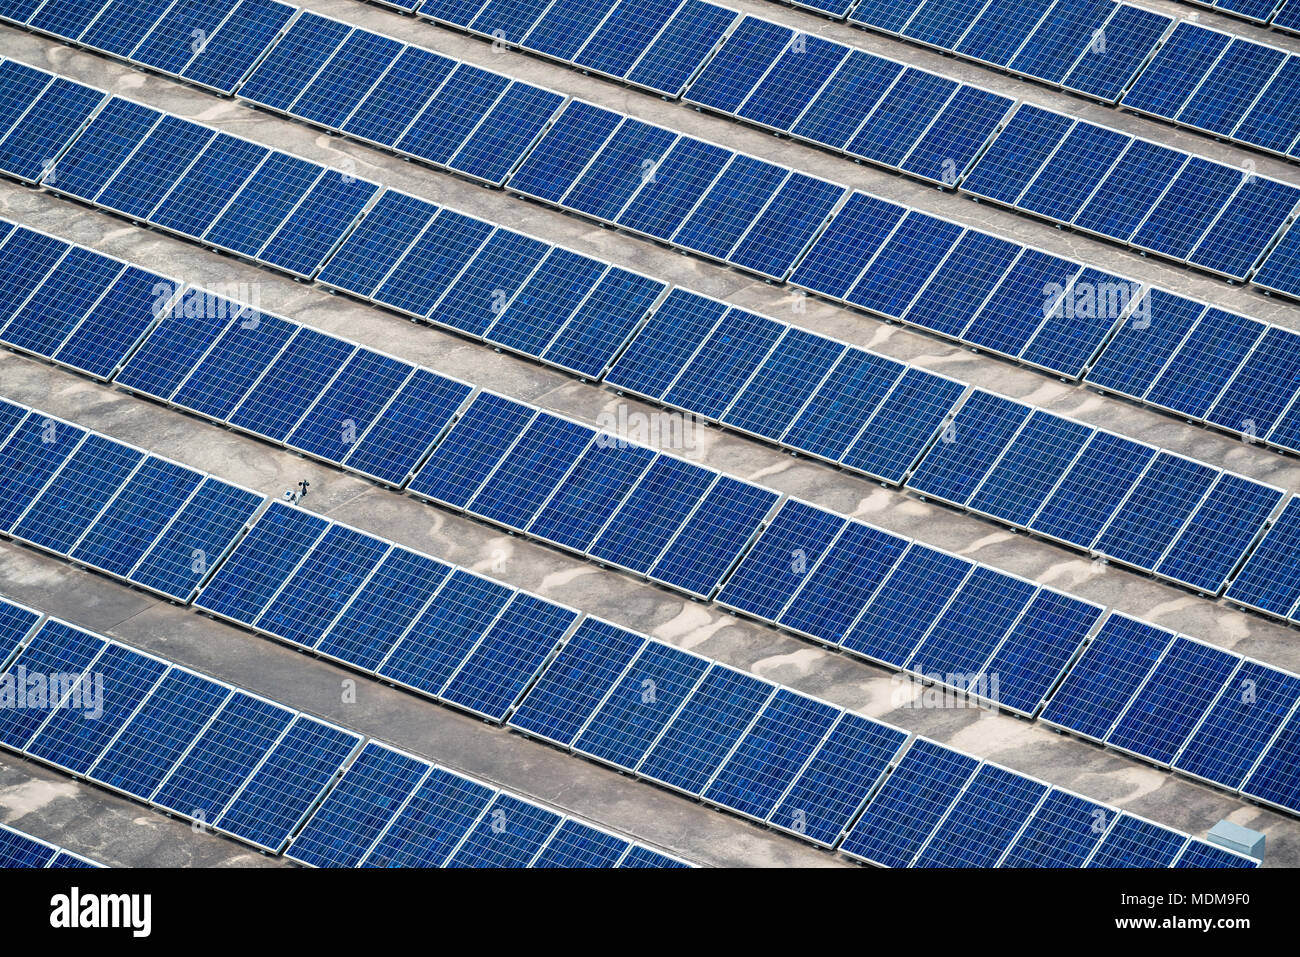 Solar panels installed on building roof in Adelade, South Australia - Stock Image